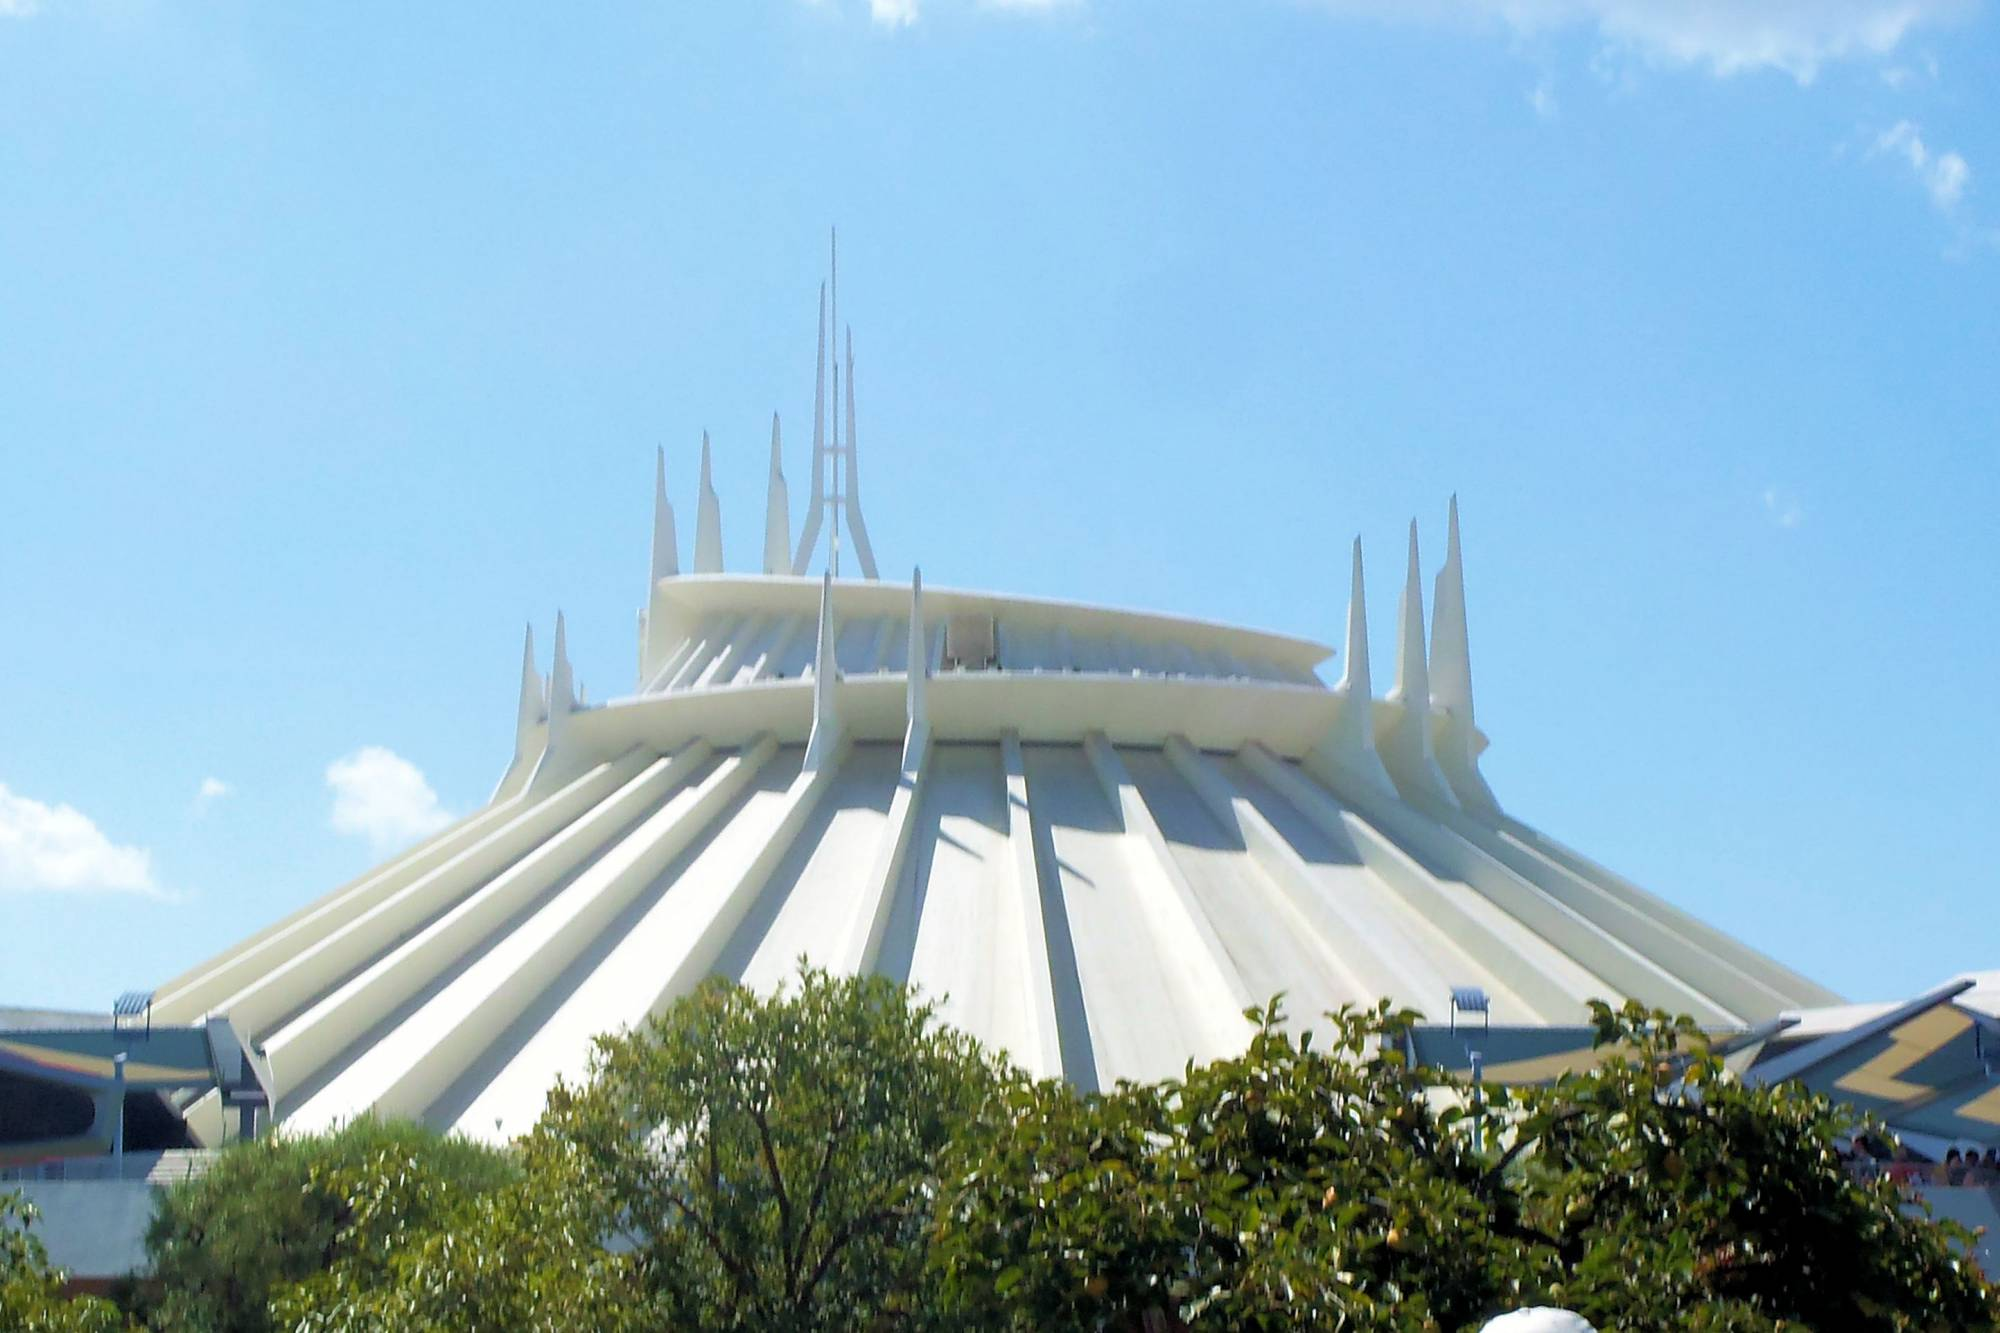 Compare attractions that are located at both Walt Disney World and Disneyland | PassPorter.com